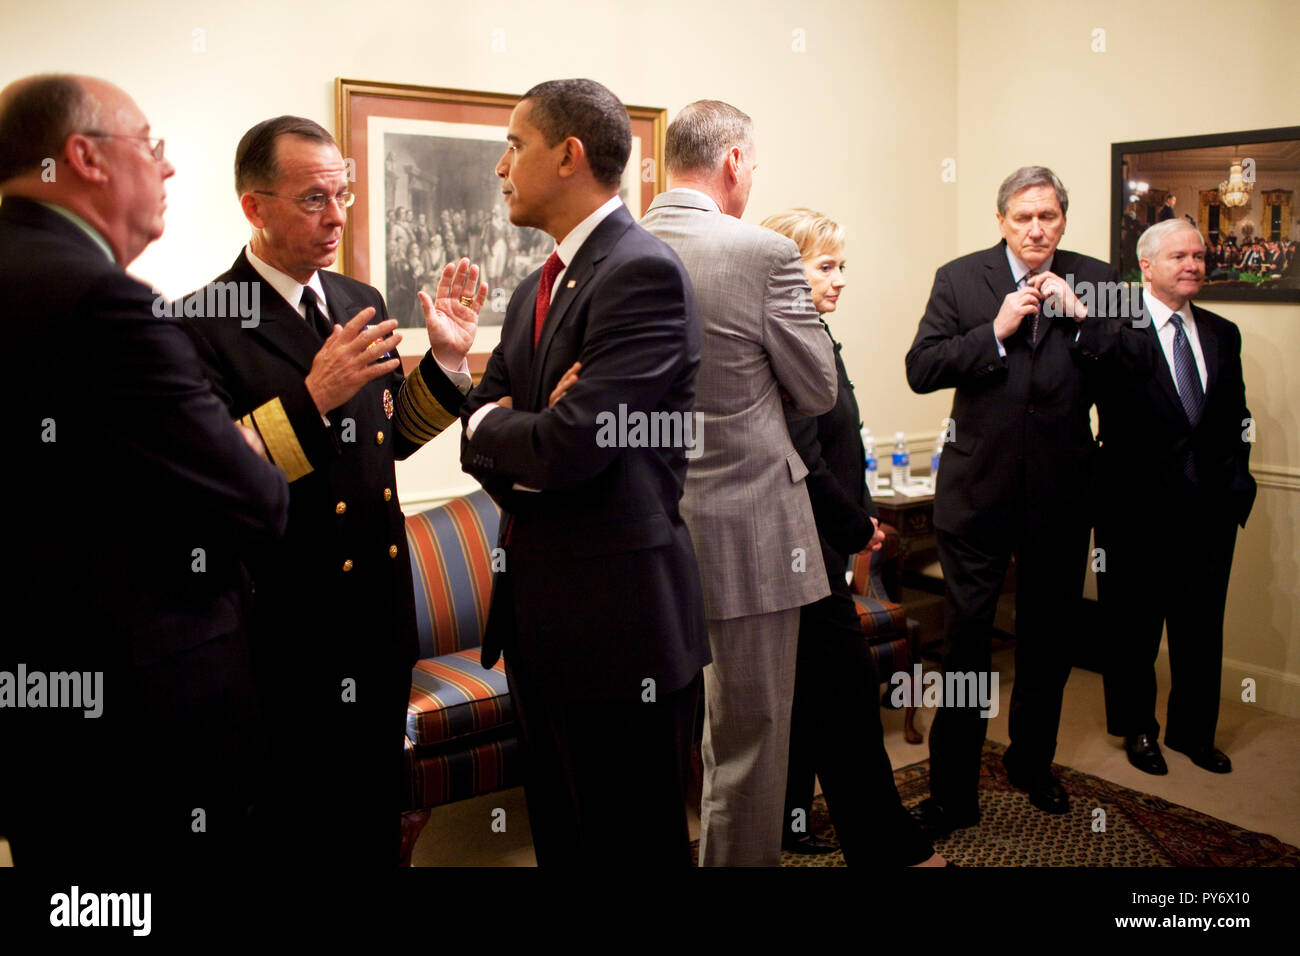 President Barack Obama talks with Admiral Michael Mullen, Chairman of the Joint Chiefs of Staff prior to a policy speech on strategy for Afghanistan and Pakistan. 3/27/09  Official White House Photo by Pete Souza - Stock Image